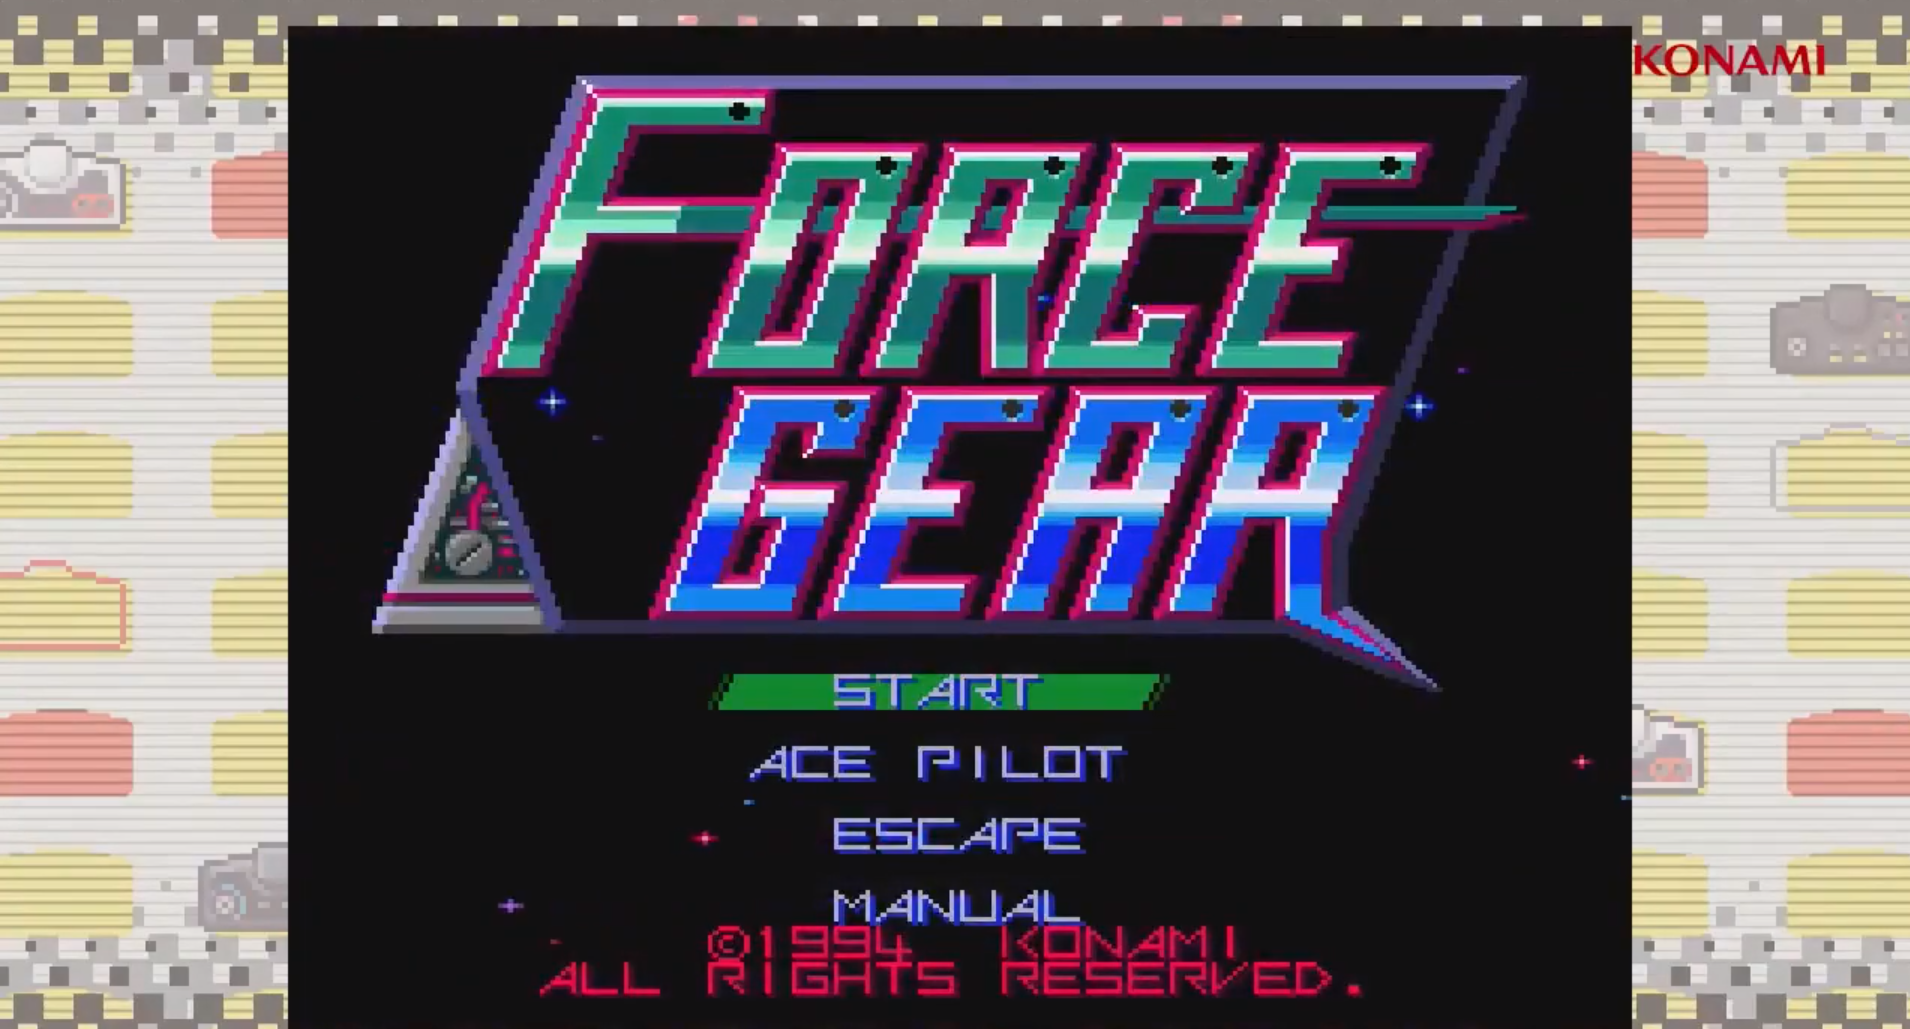 Force Gear & Twinbee Discovered as Hidden Games on the PCE Mini